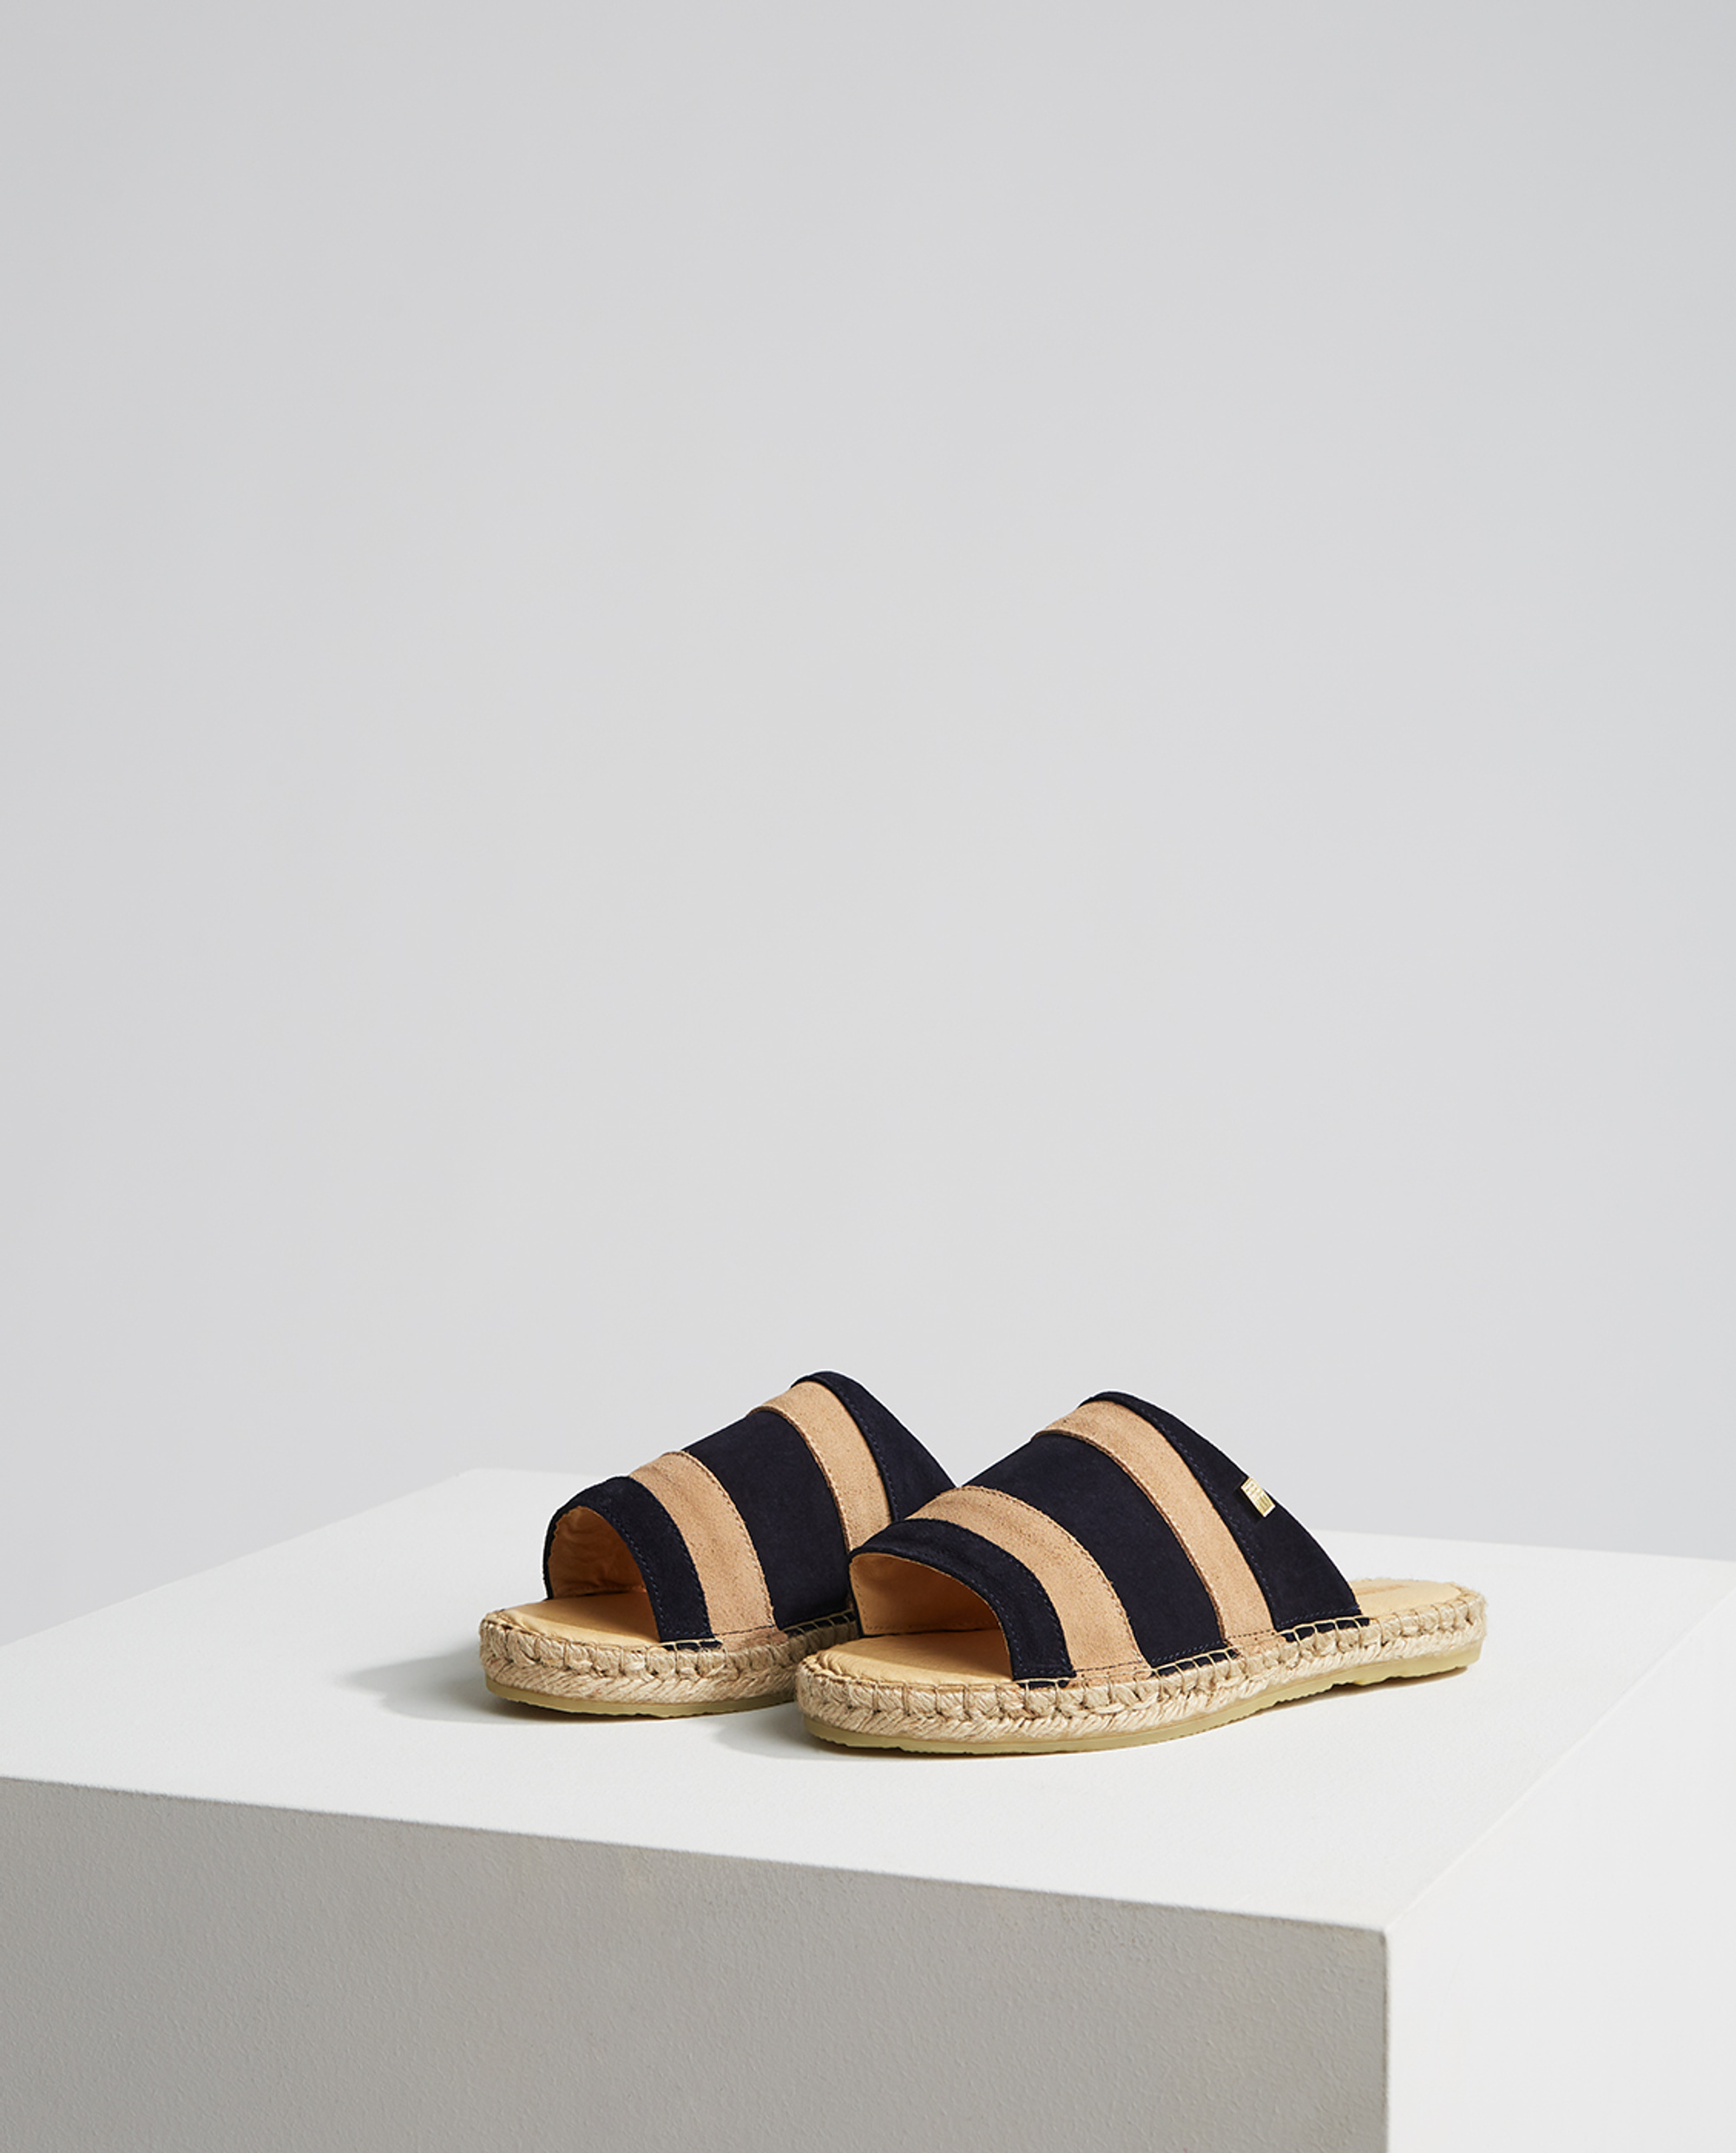 Liverly Sandals, Dark Blue/Beige Stripe